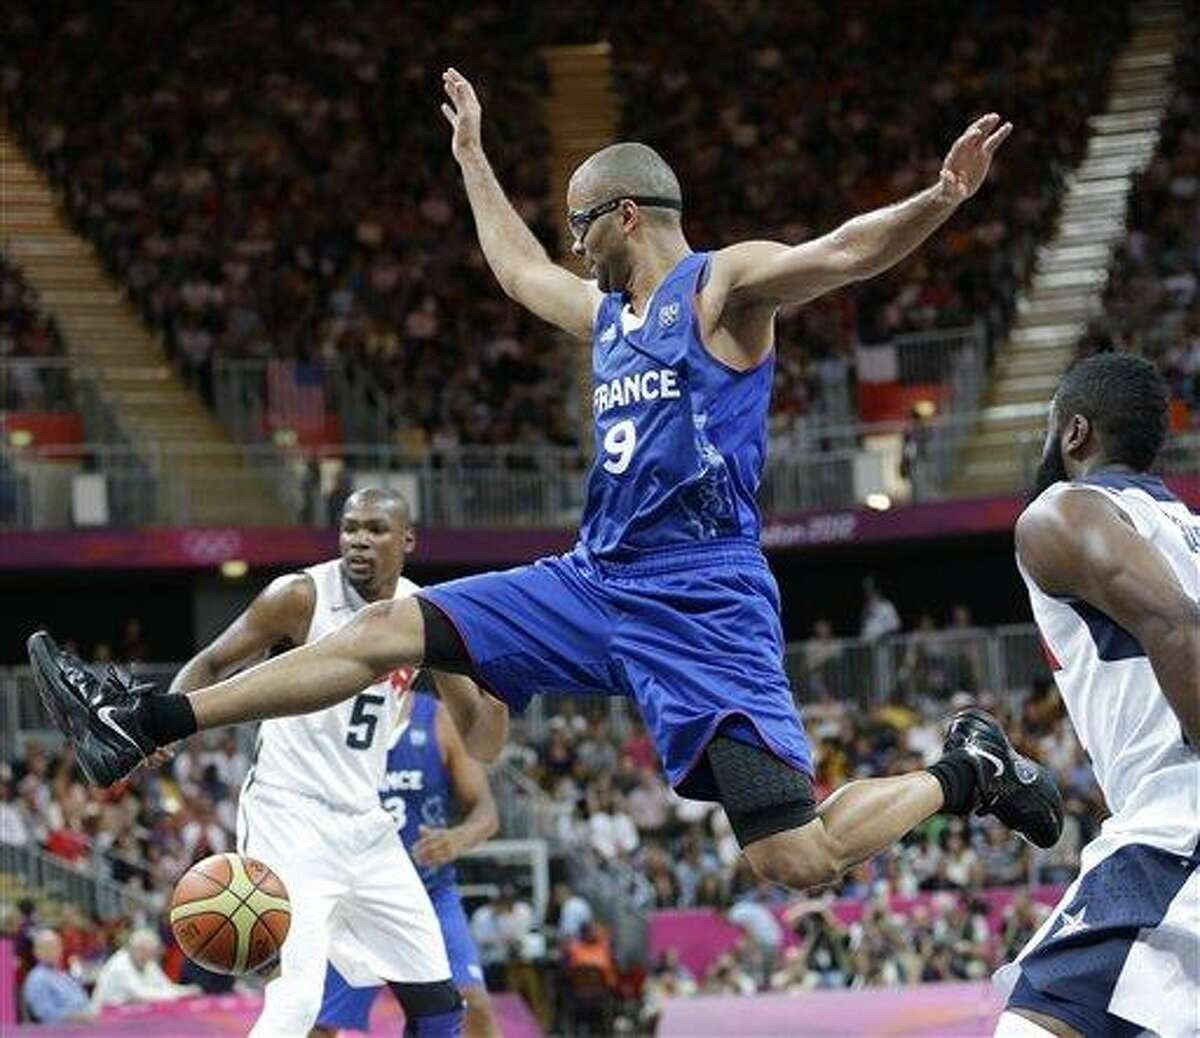 United States' James Harden, right, strips the ball from France's Tony Parker (9) during the first half of a preliminary men's basketball game at the 2012 Summer Olympics Sunday in London. Associated Press